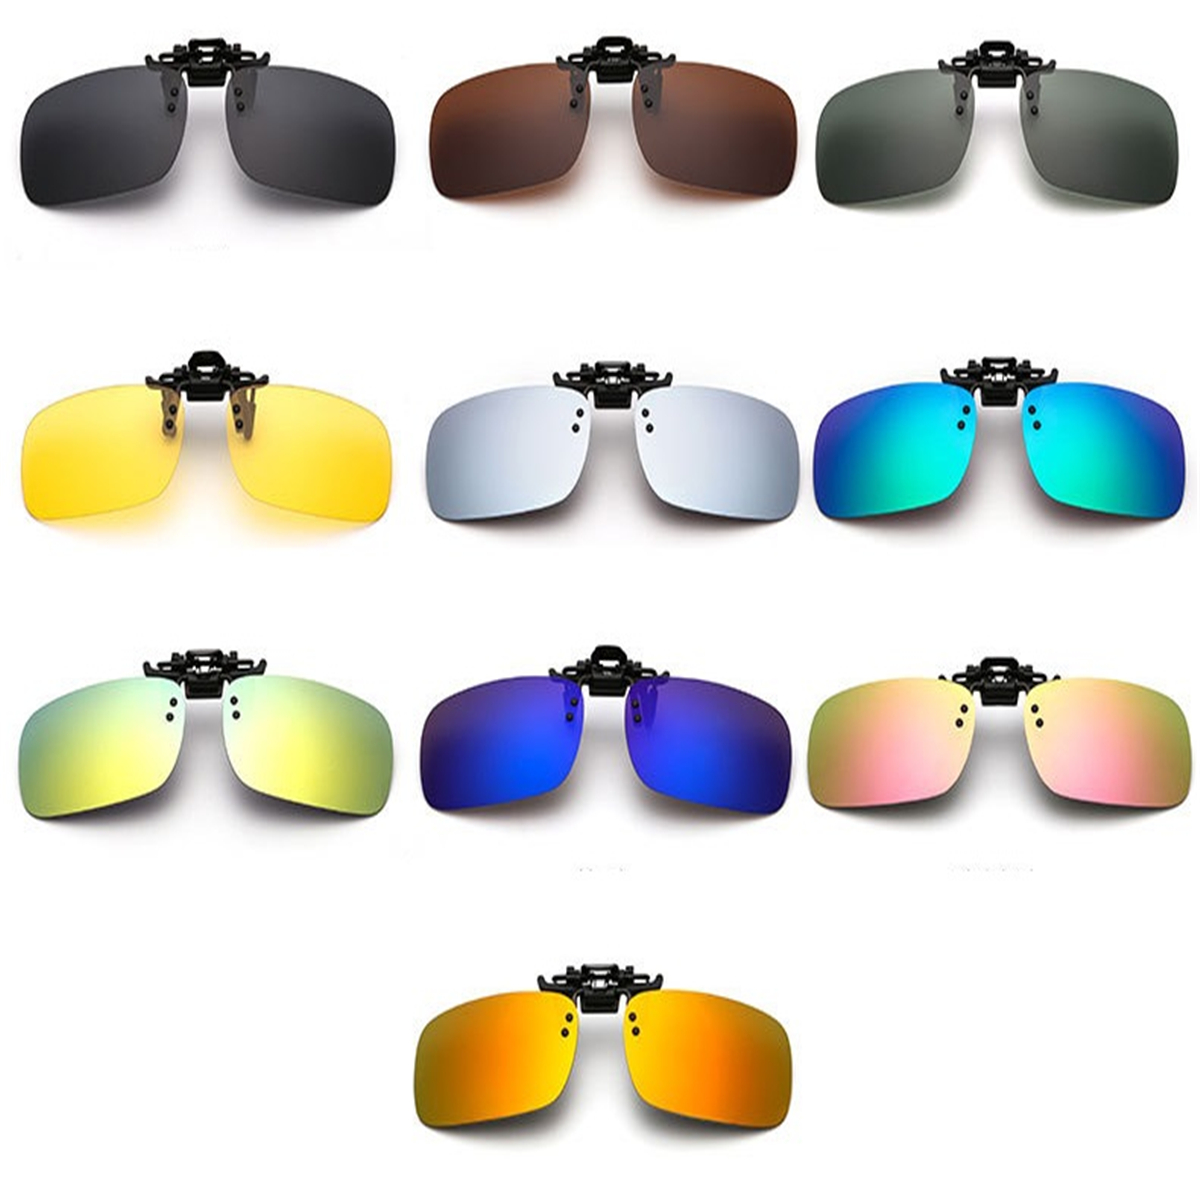 4899db84c216 Clips on Glasses Polarized Day Night Vision UV Lens Fishing Driving  Sunglasses